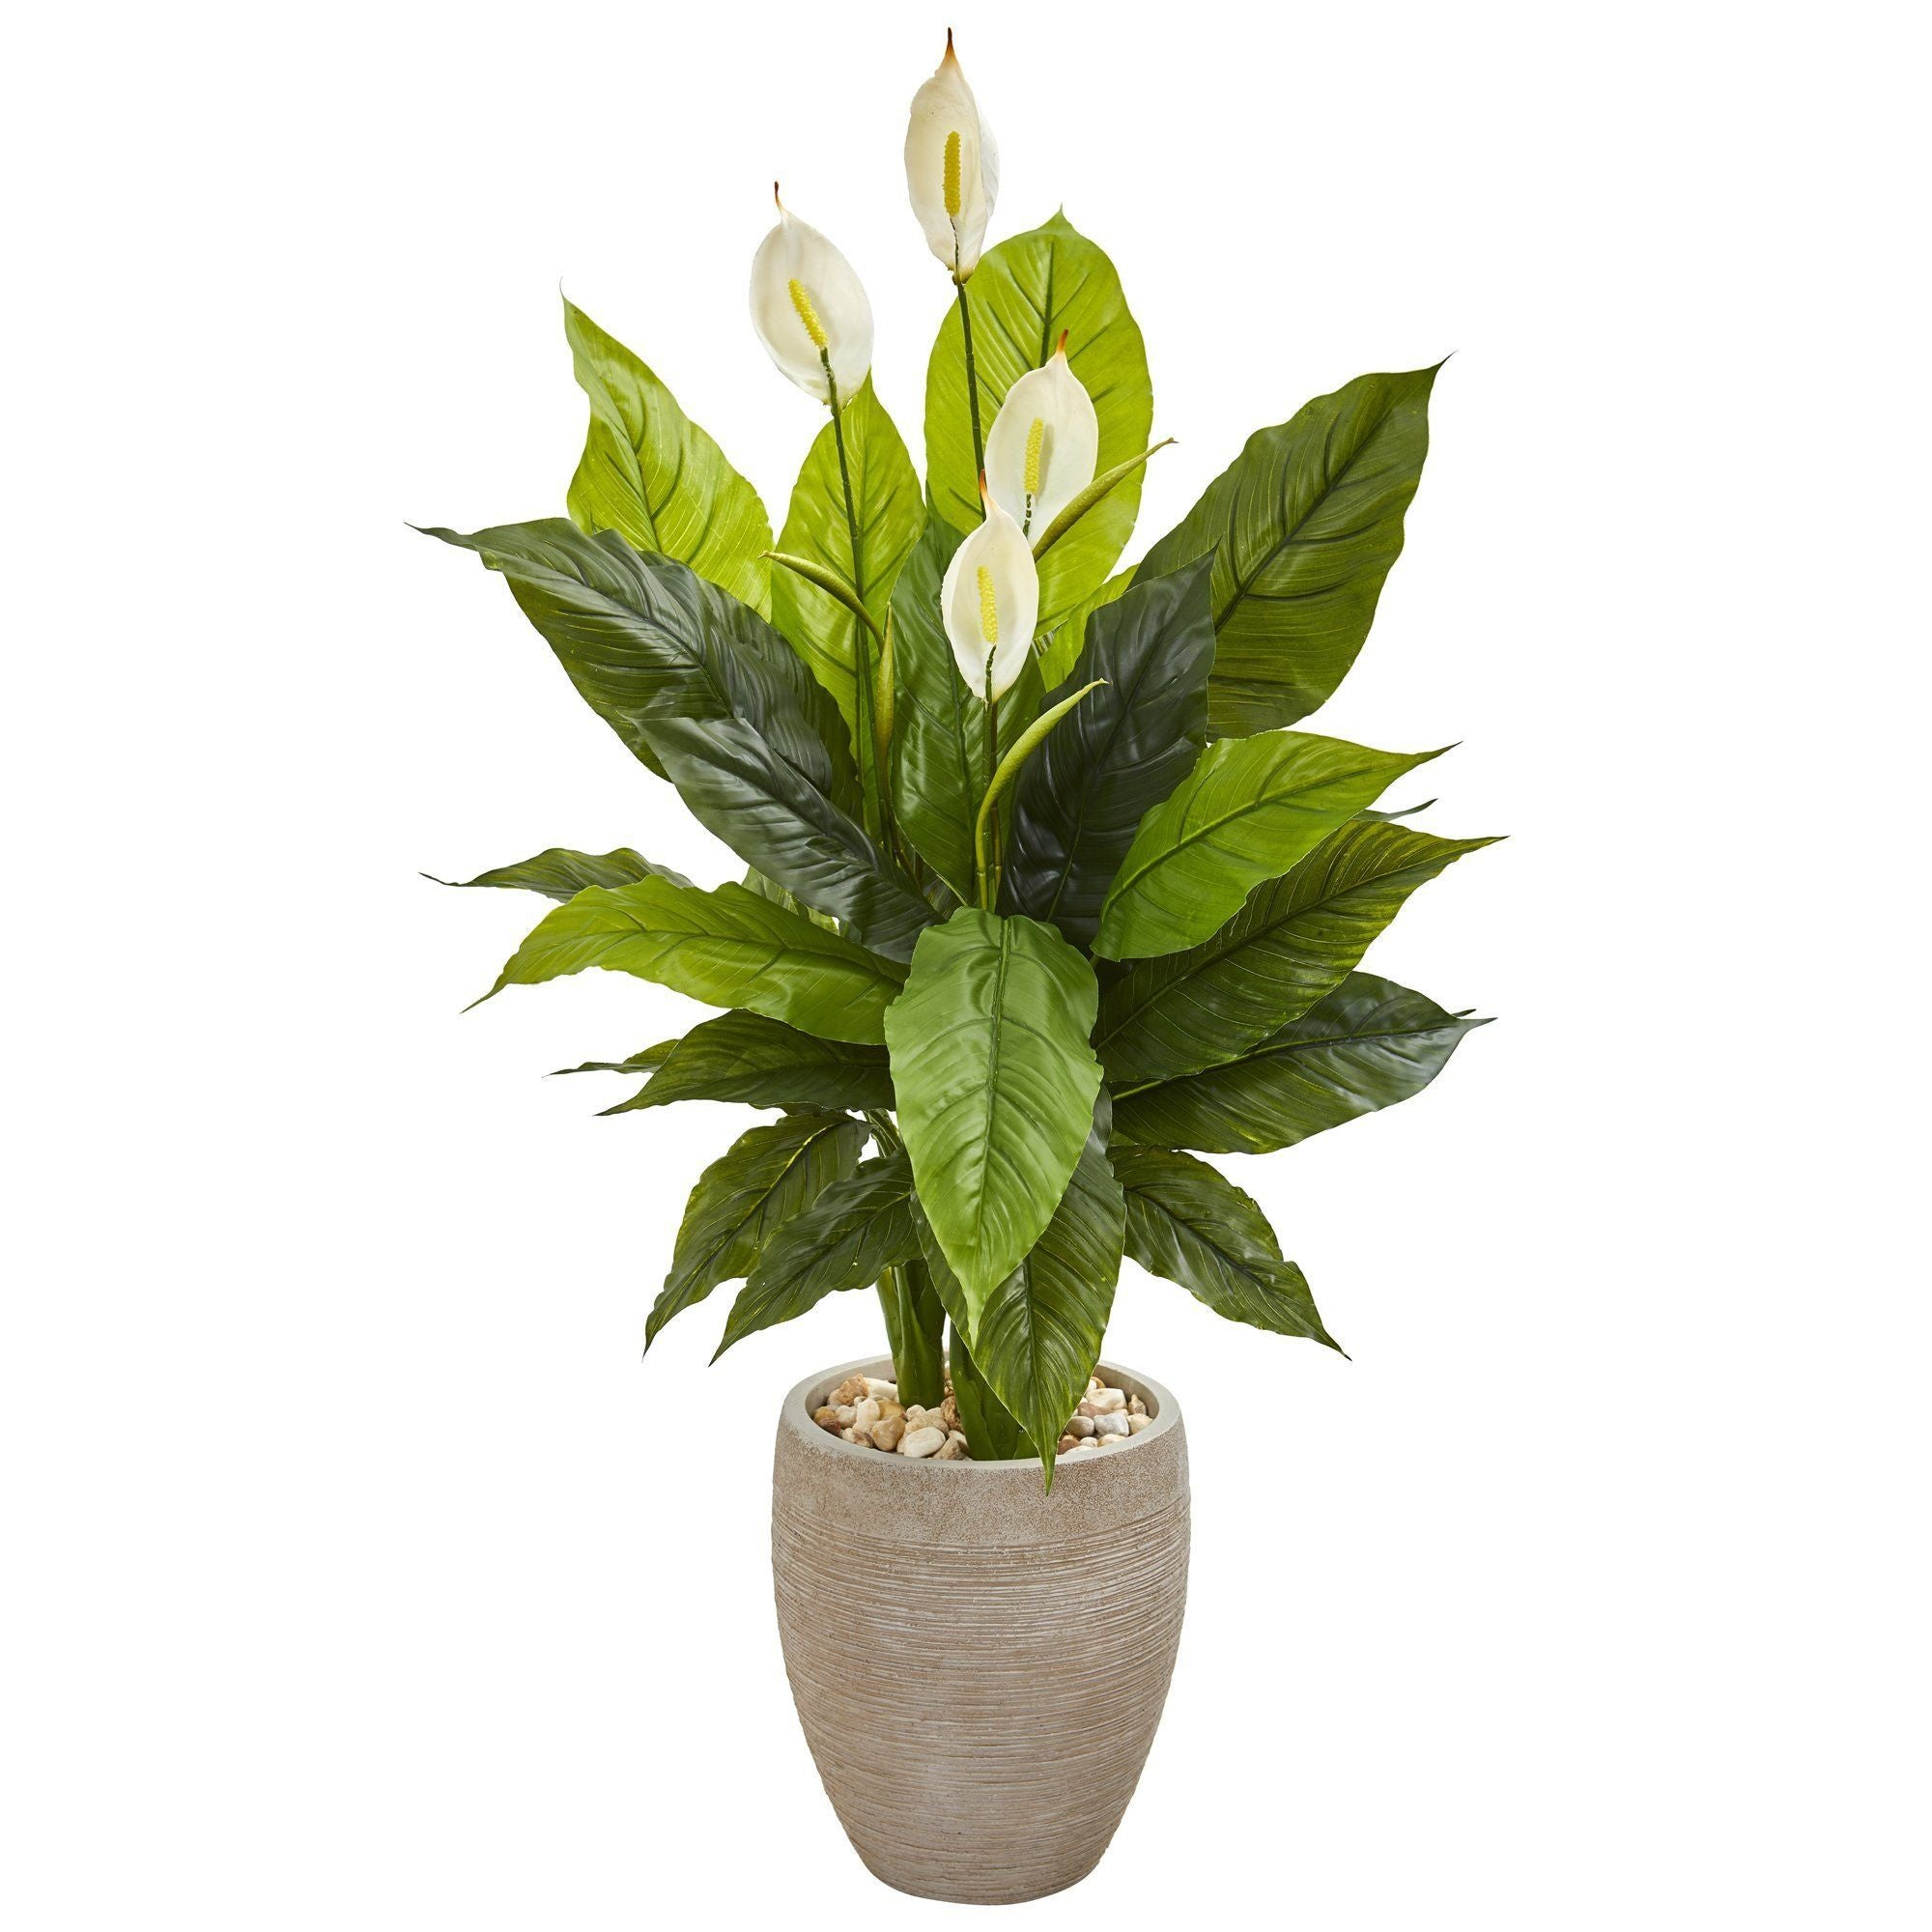 47 Spathiphyllum Artificial Plant In Sand Colored Planter Real Touch Nearly Natural